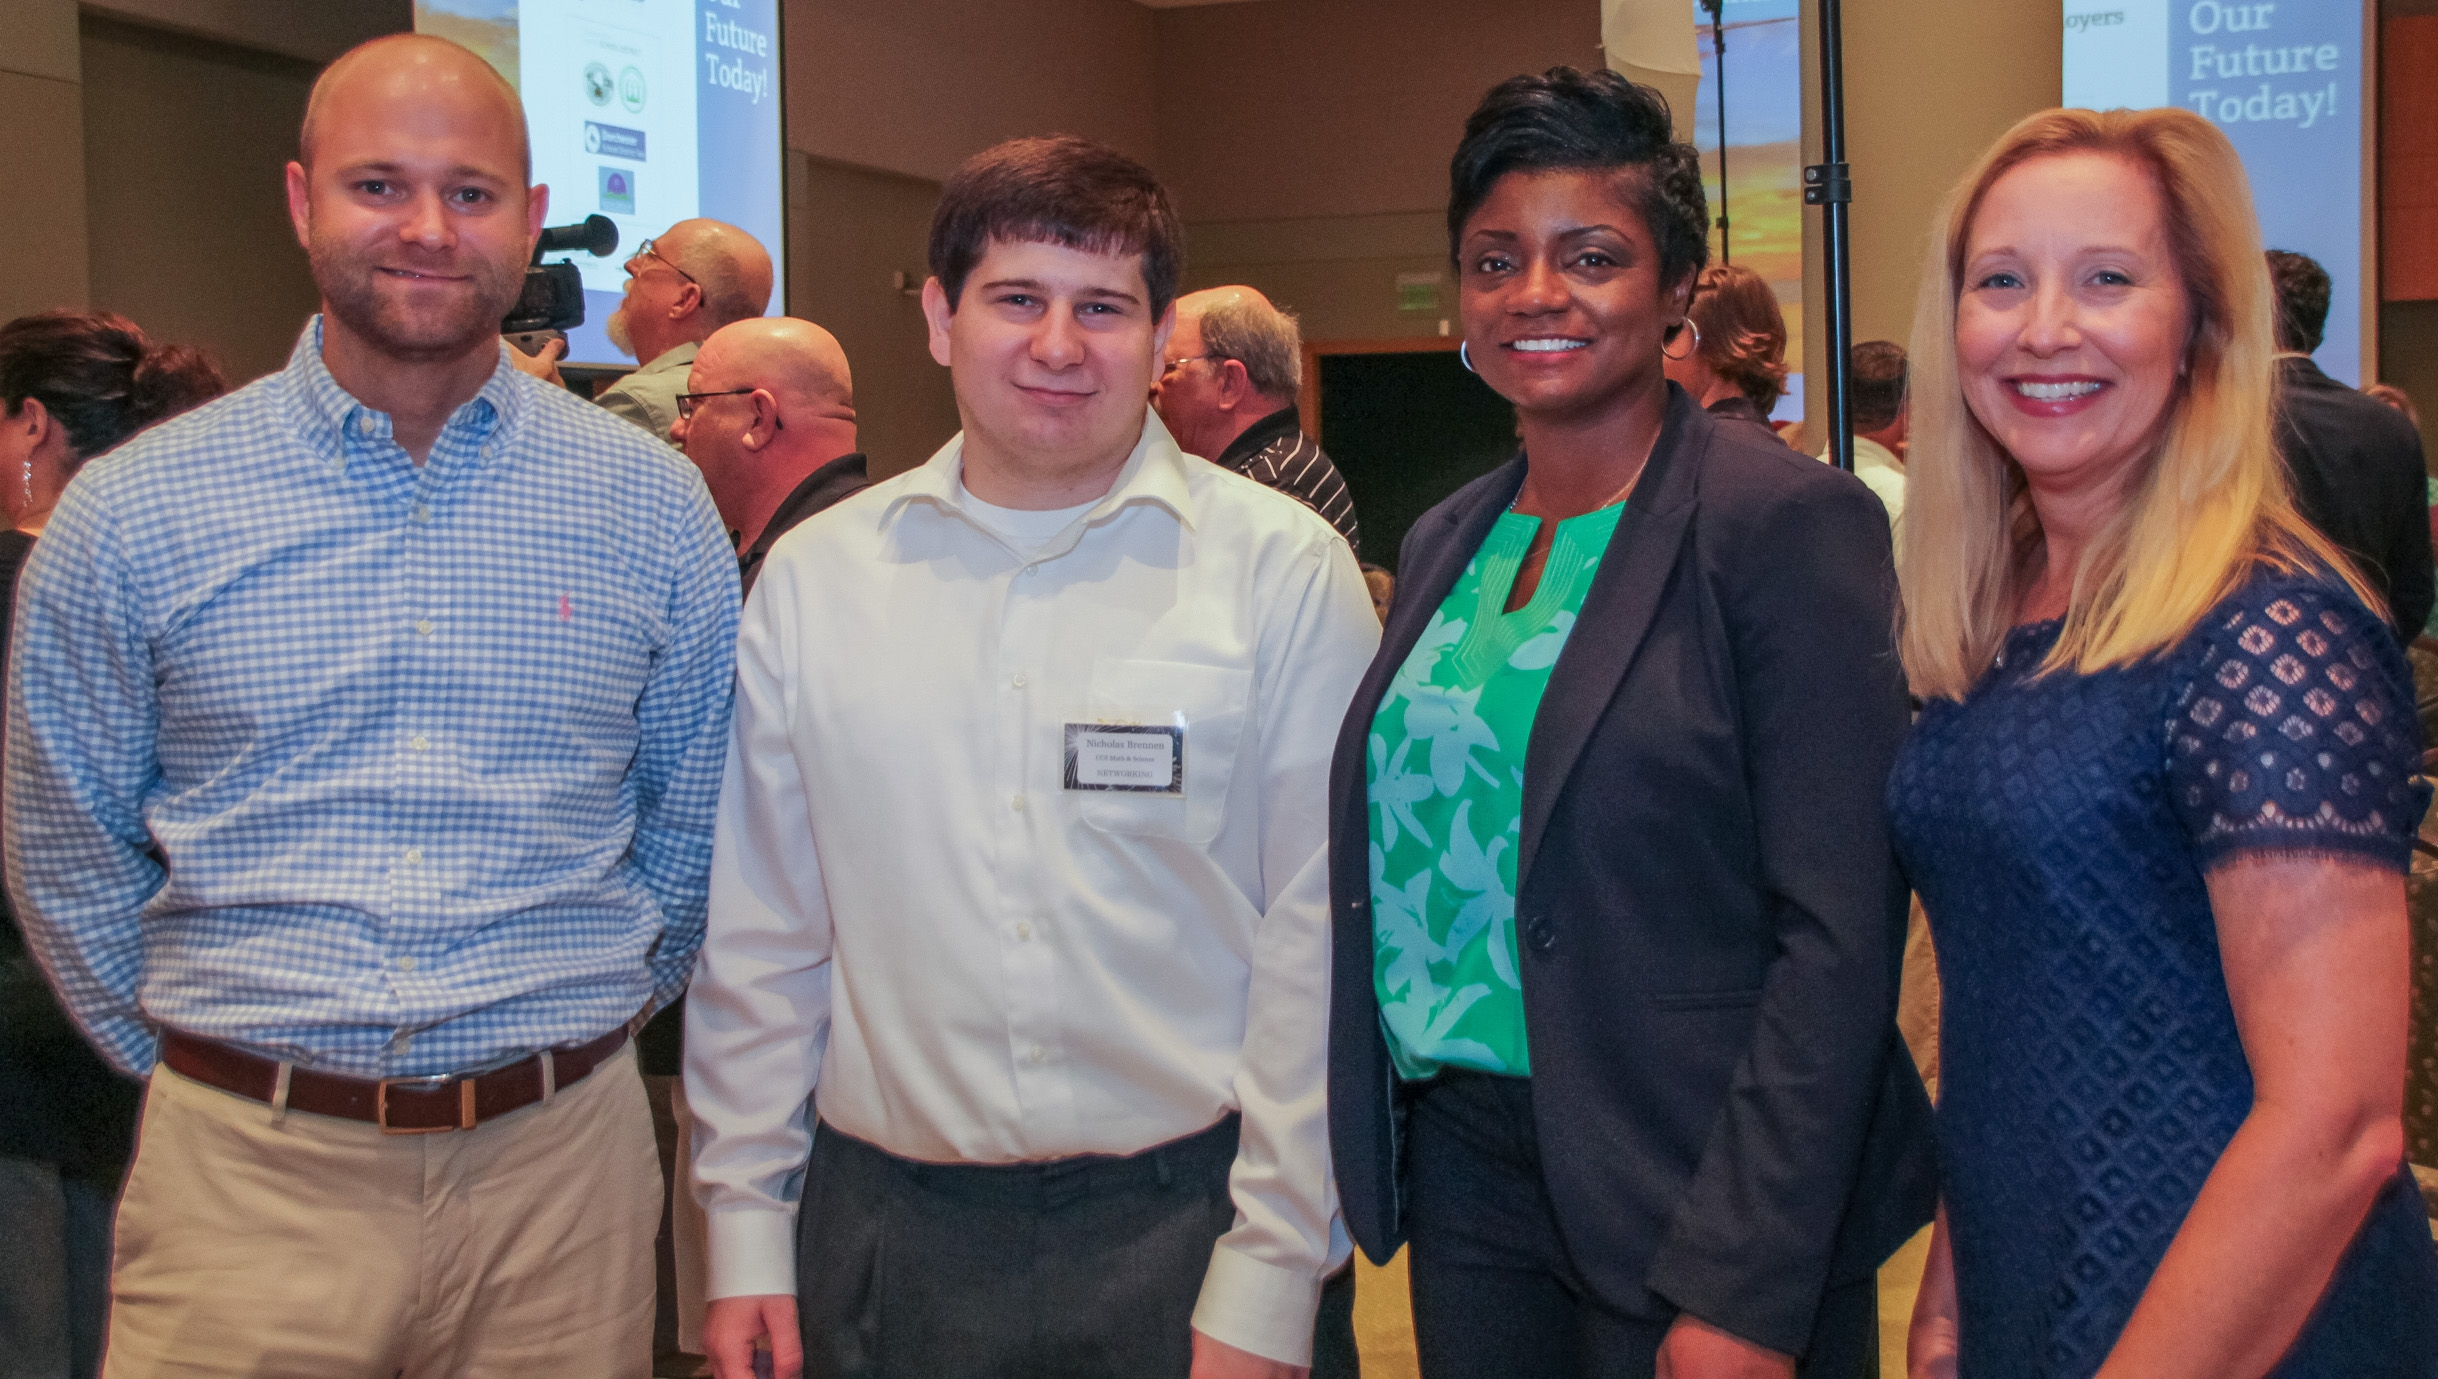 """Left to right: Eric Romanowski, VR Counselor; Nicholas """"Nick"""" Brennan; Felicia W. Johnson, VR Interim Commissioner; Cathy Clower, VR Regional Business Development Specialist.Nick is a recent graduate of Charleston Charter School of Math and Science and a 2017 Charleston Regional Youth Apprentice. He will be hired as an apprentice with Trident Technical College's Computer Networking Apprenticeship Program."""